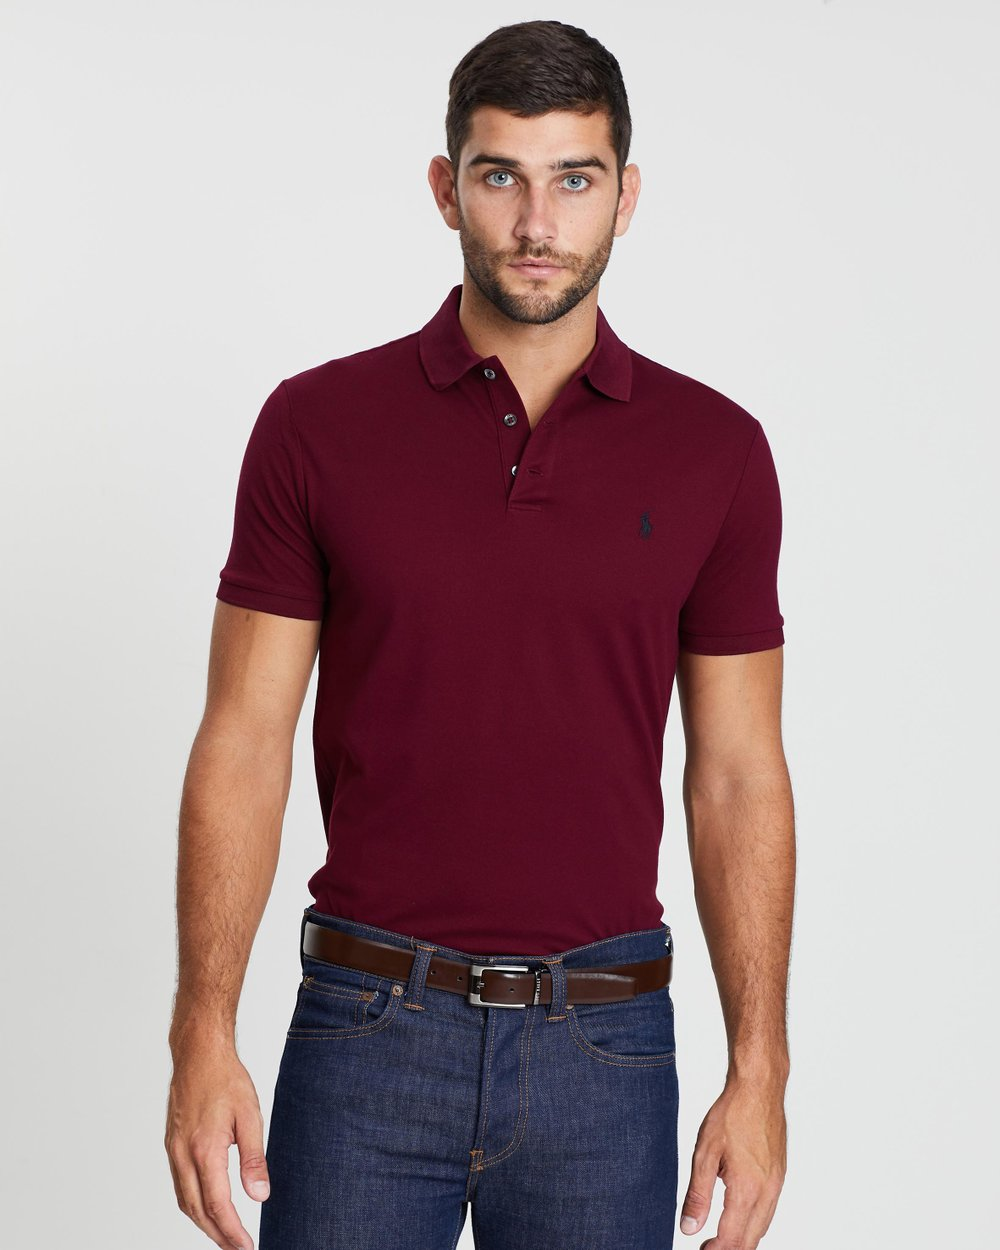 835ebdc6a5d3 Custom Slim Fit Mesh Polo by Polo Ralph Lauren Online